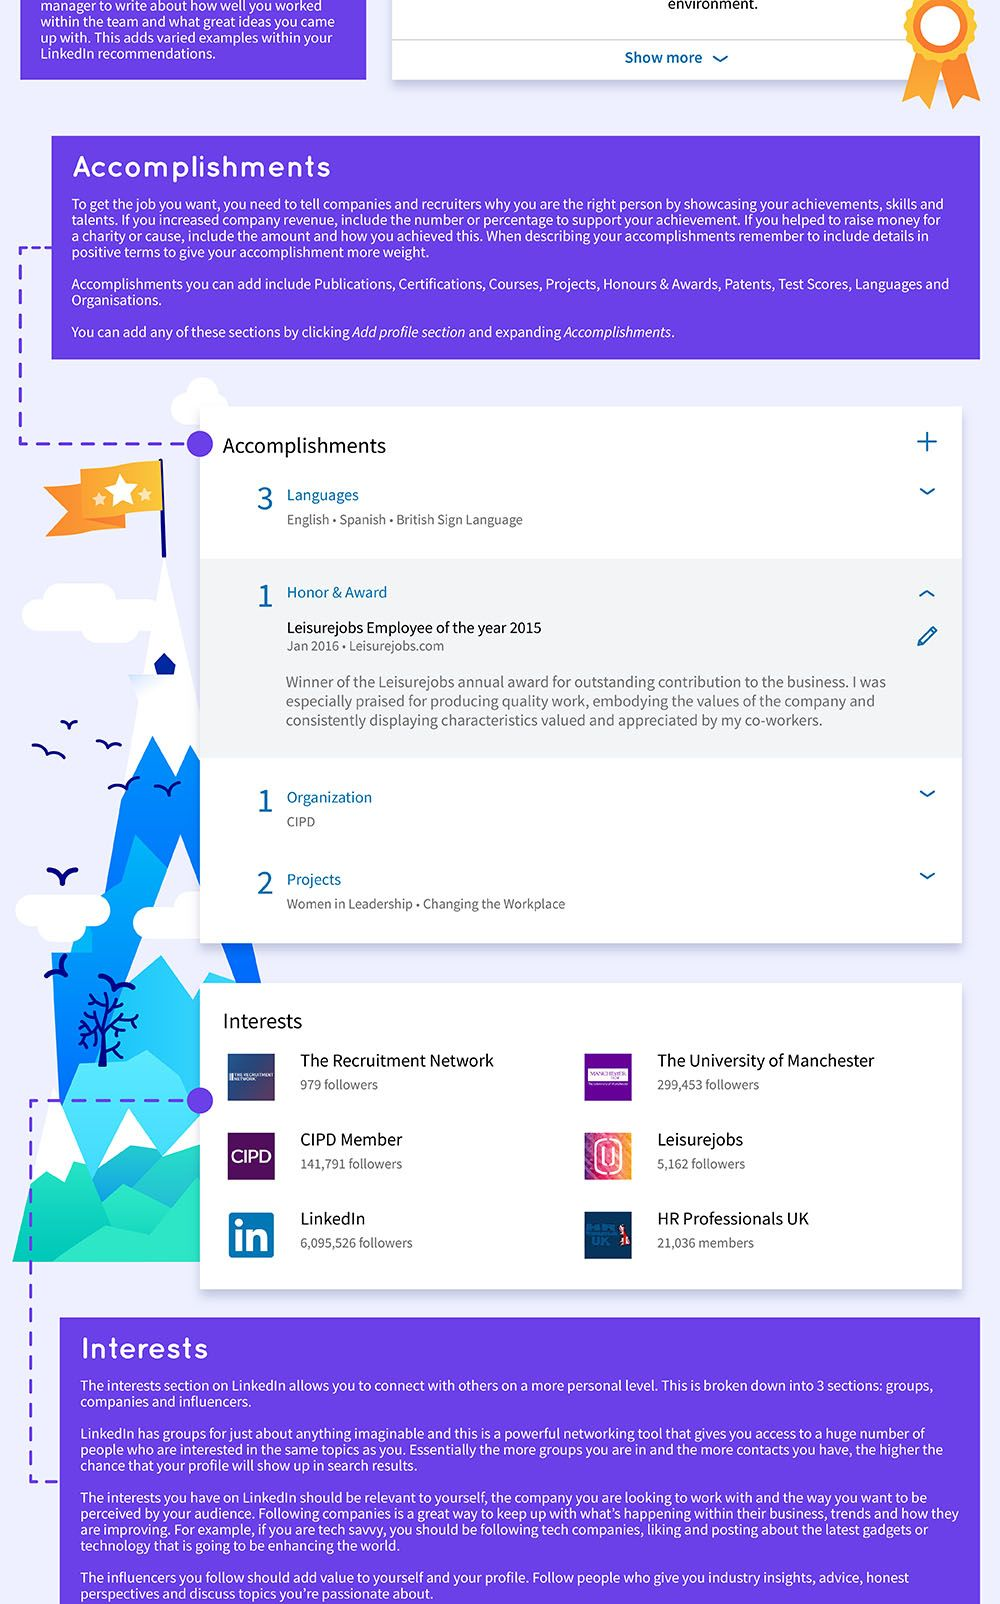 The Ultimate LinkedIn Cheat Sheet 2019 [Infographic